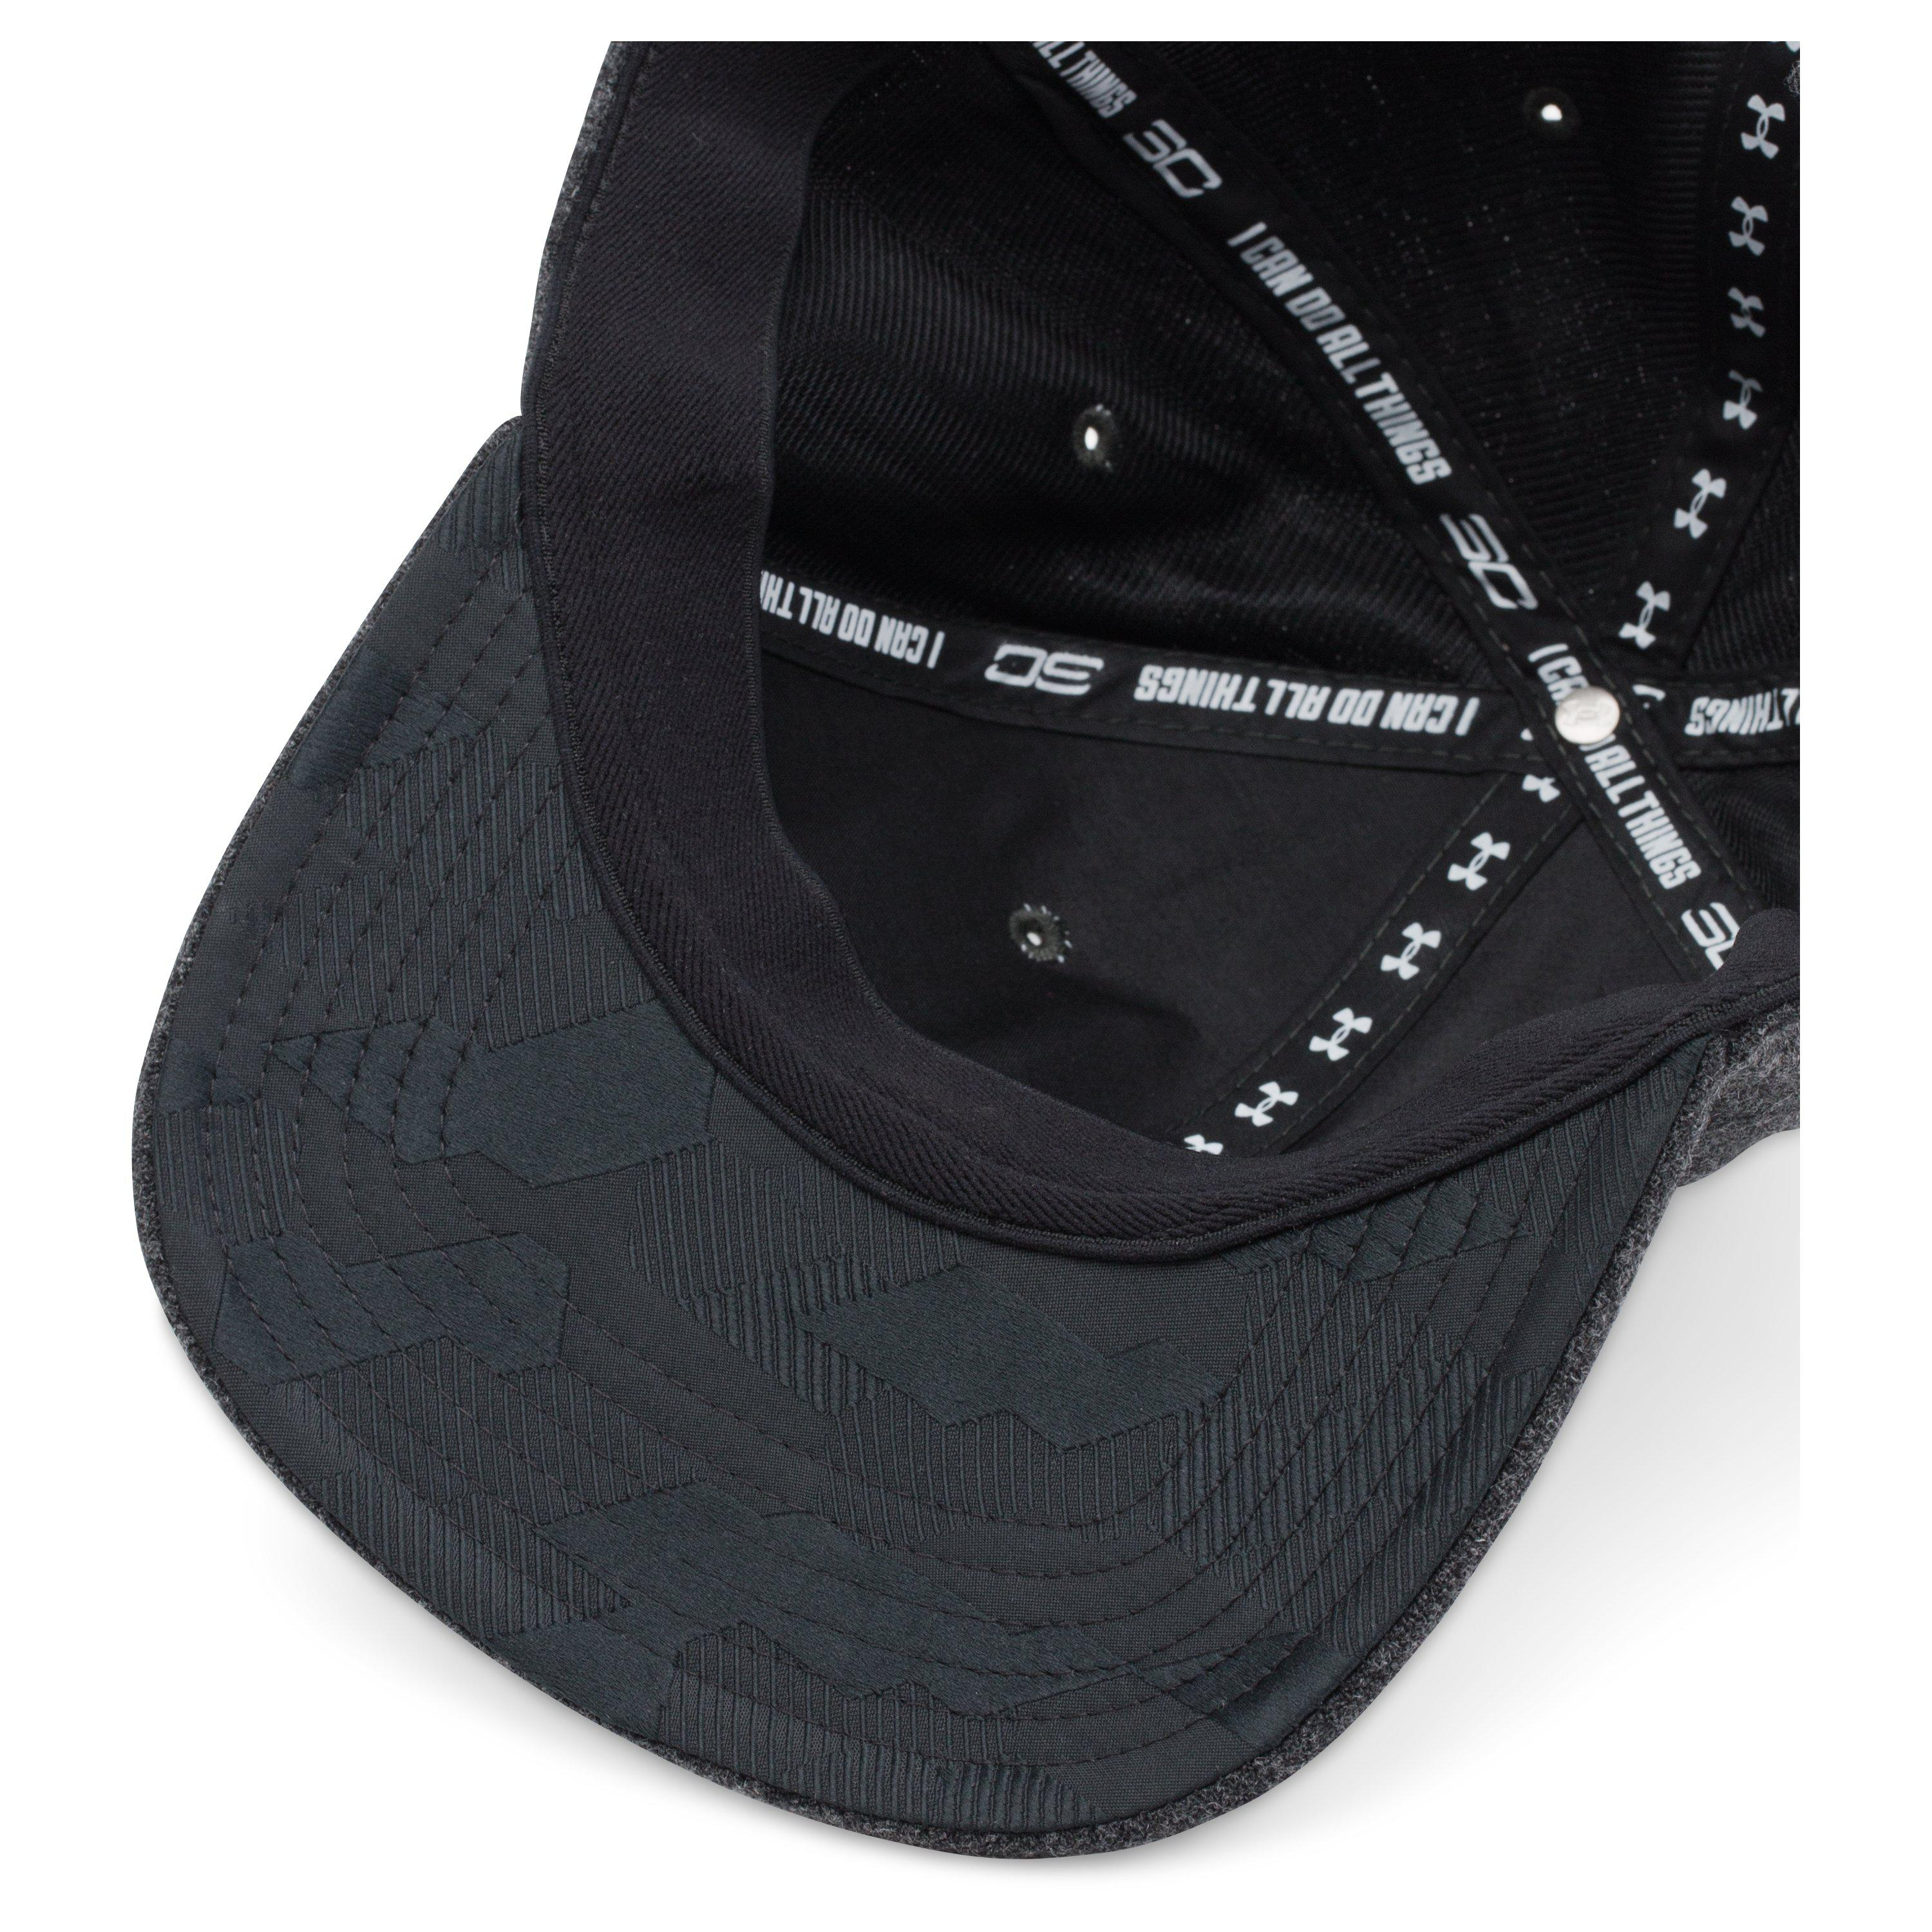 Lyst - Under Armour Men s Ua Sc30 Elite Cap in Black for Men 55fc9912bbd